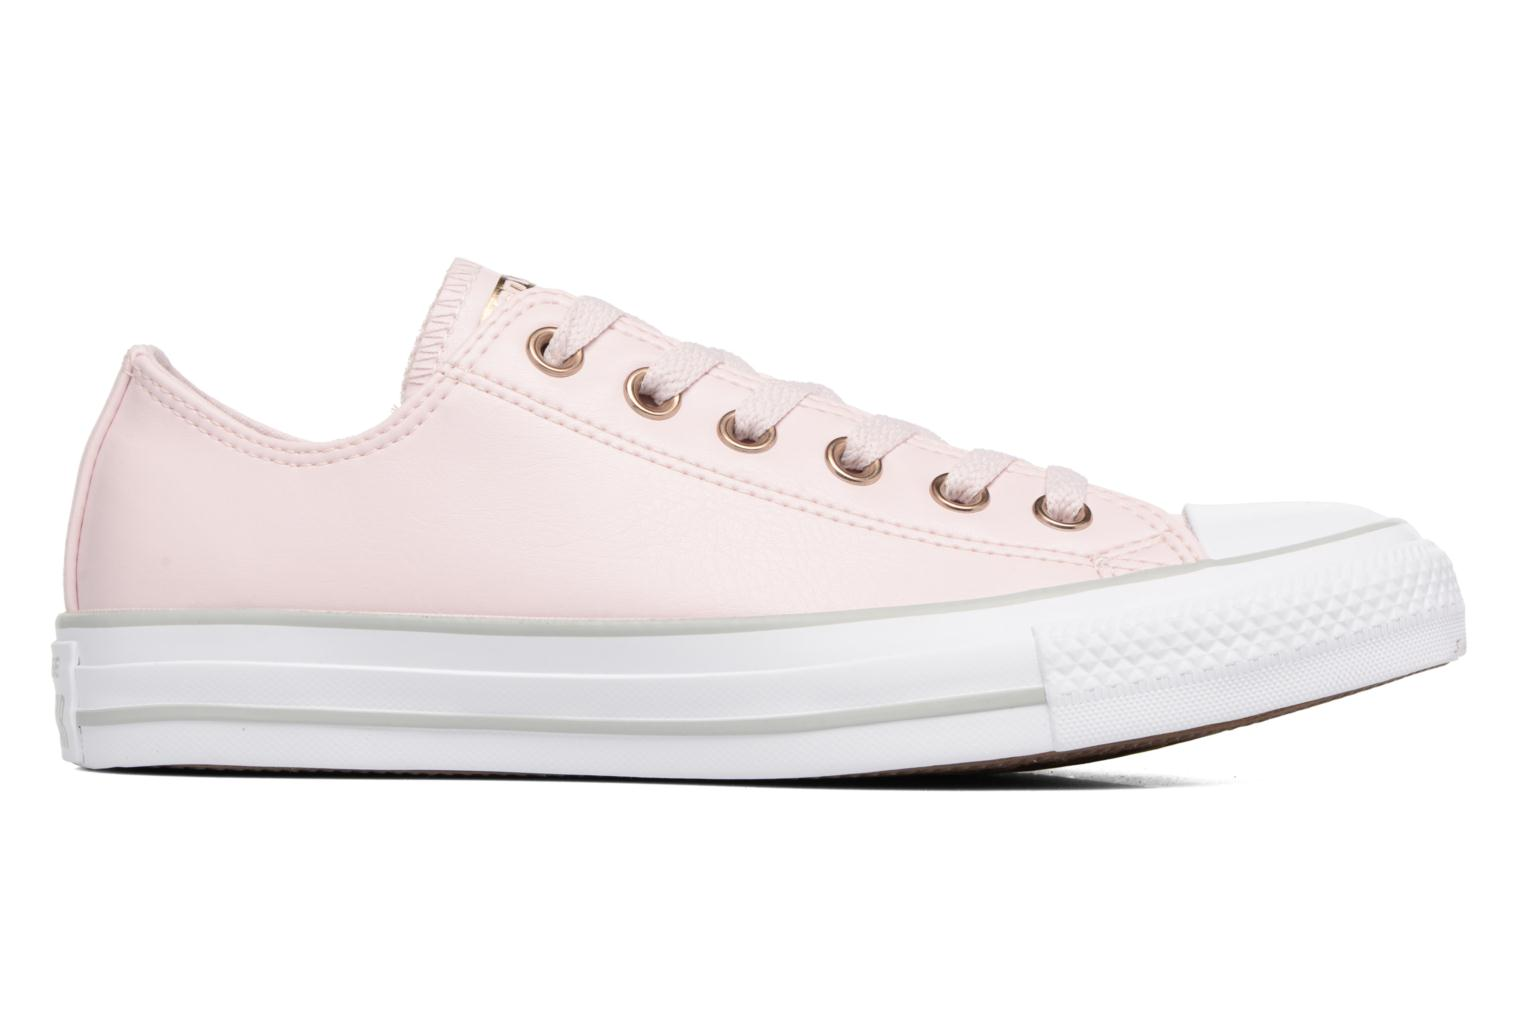 Chuck Taylor All Star Craft SL Ox Barely Rose/White/Mouse